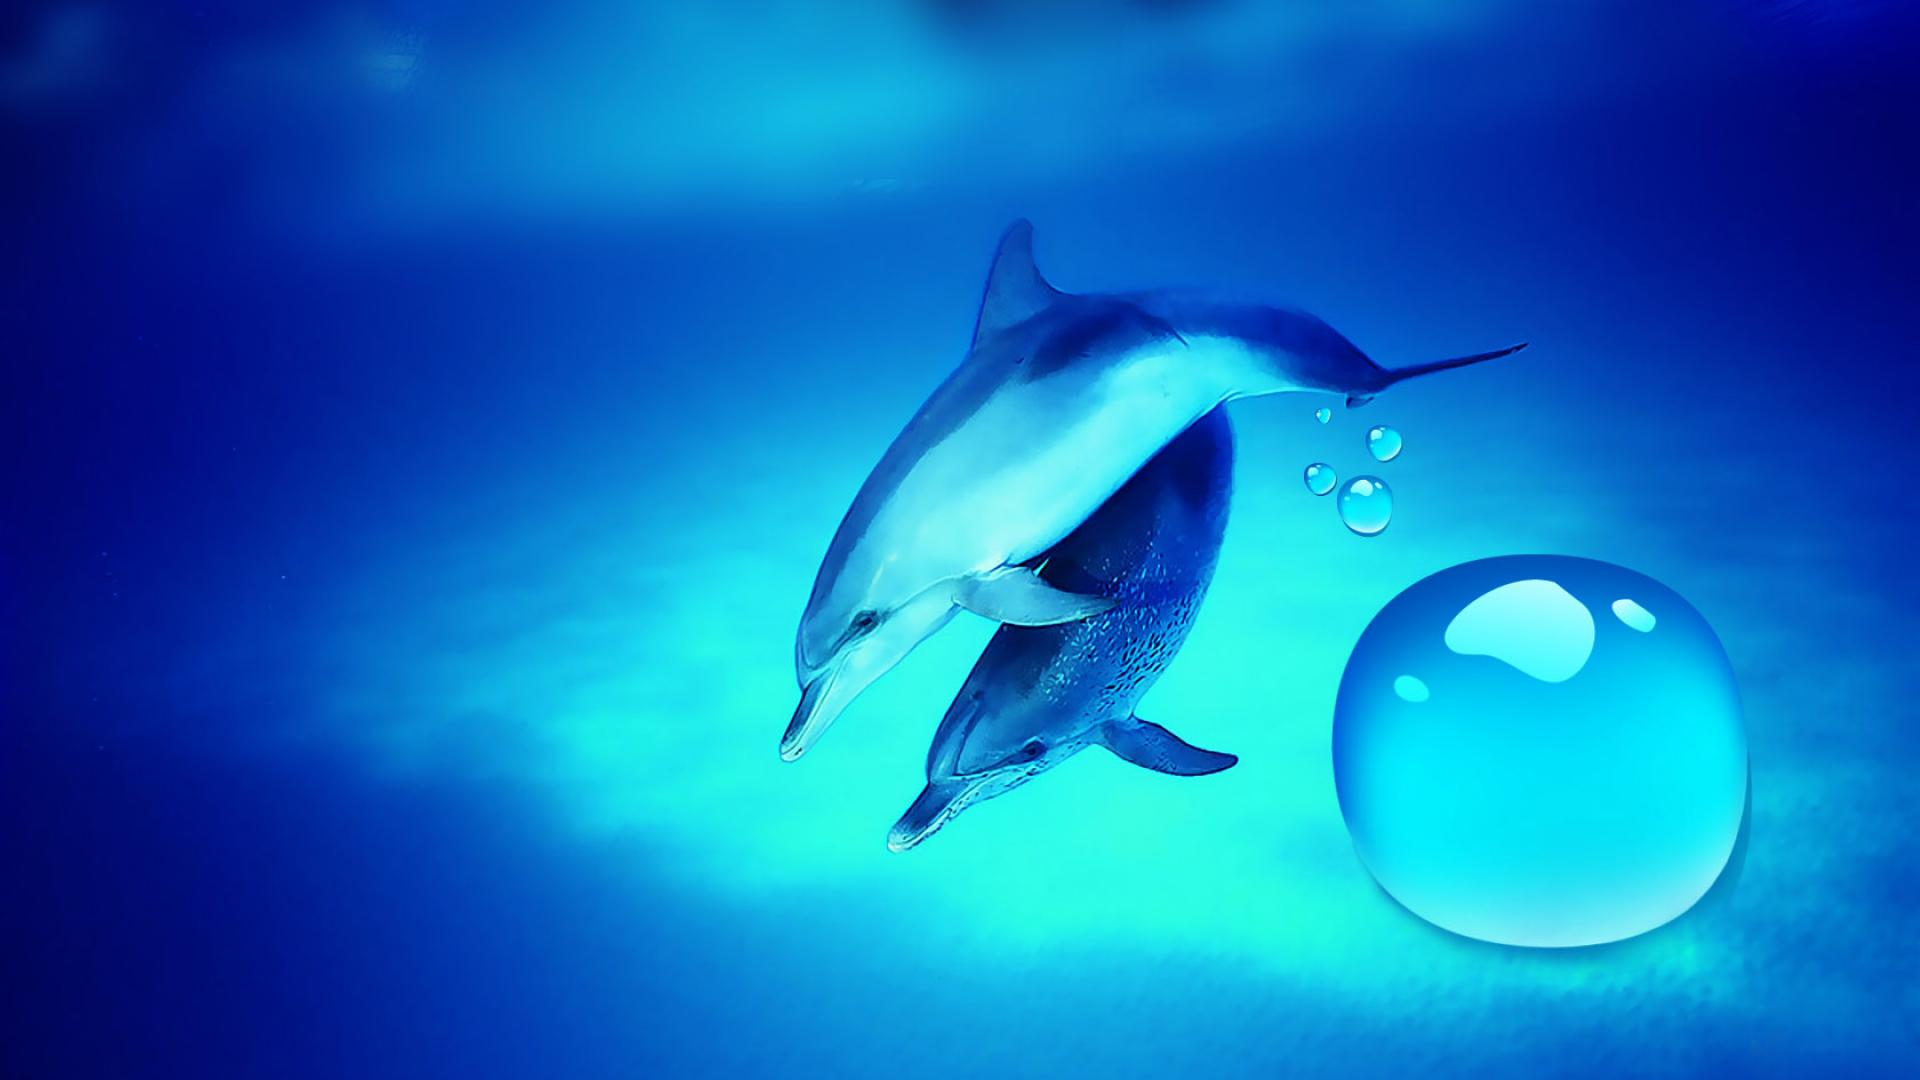 D-D-Dolphins-Desktop-HD-wallpaper-wp3604511